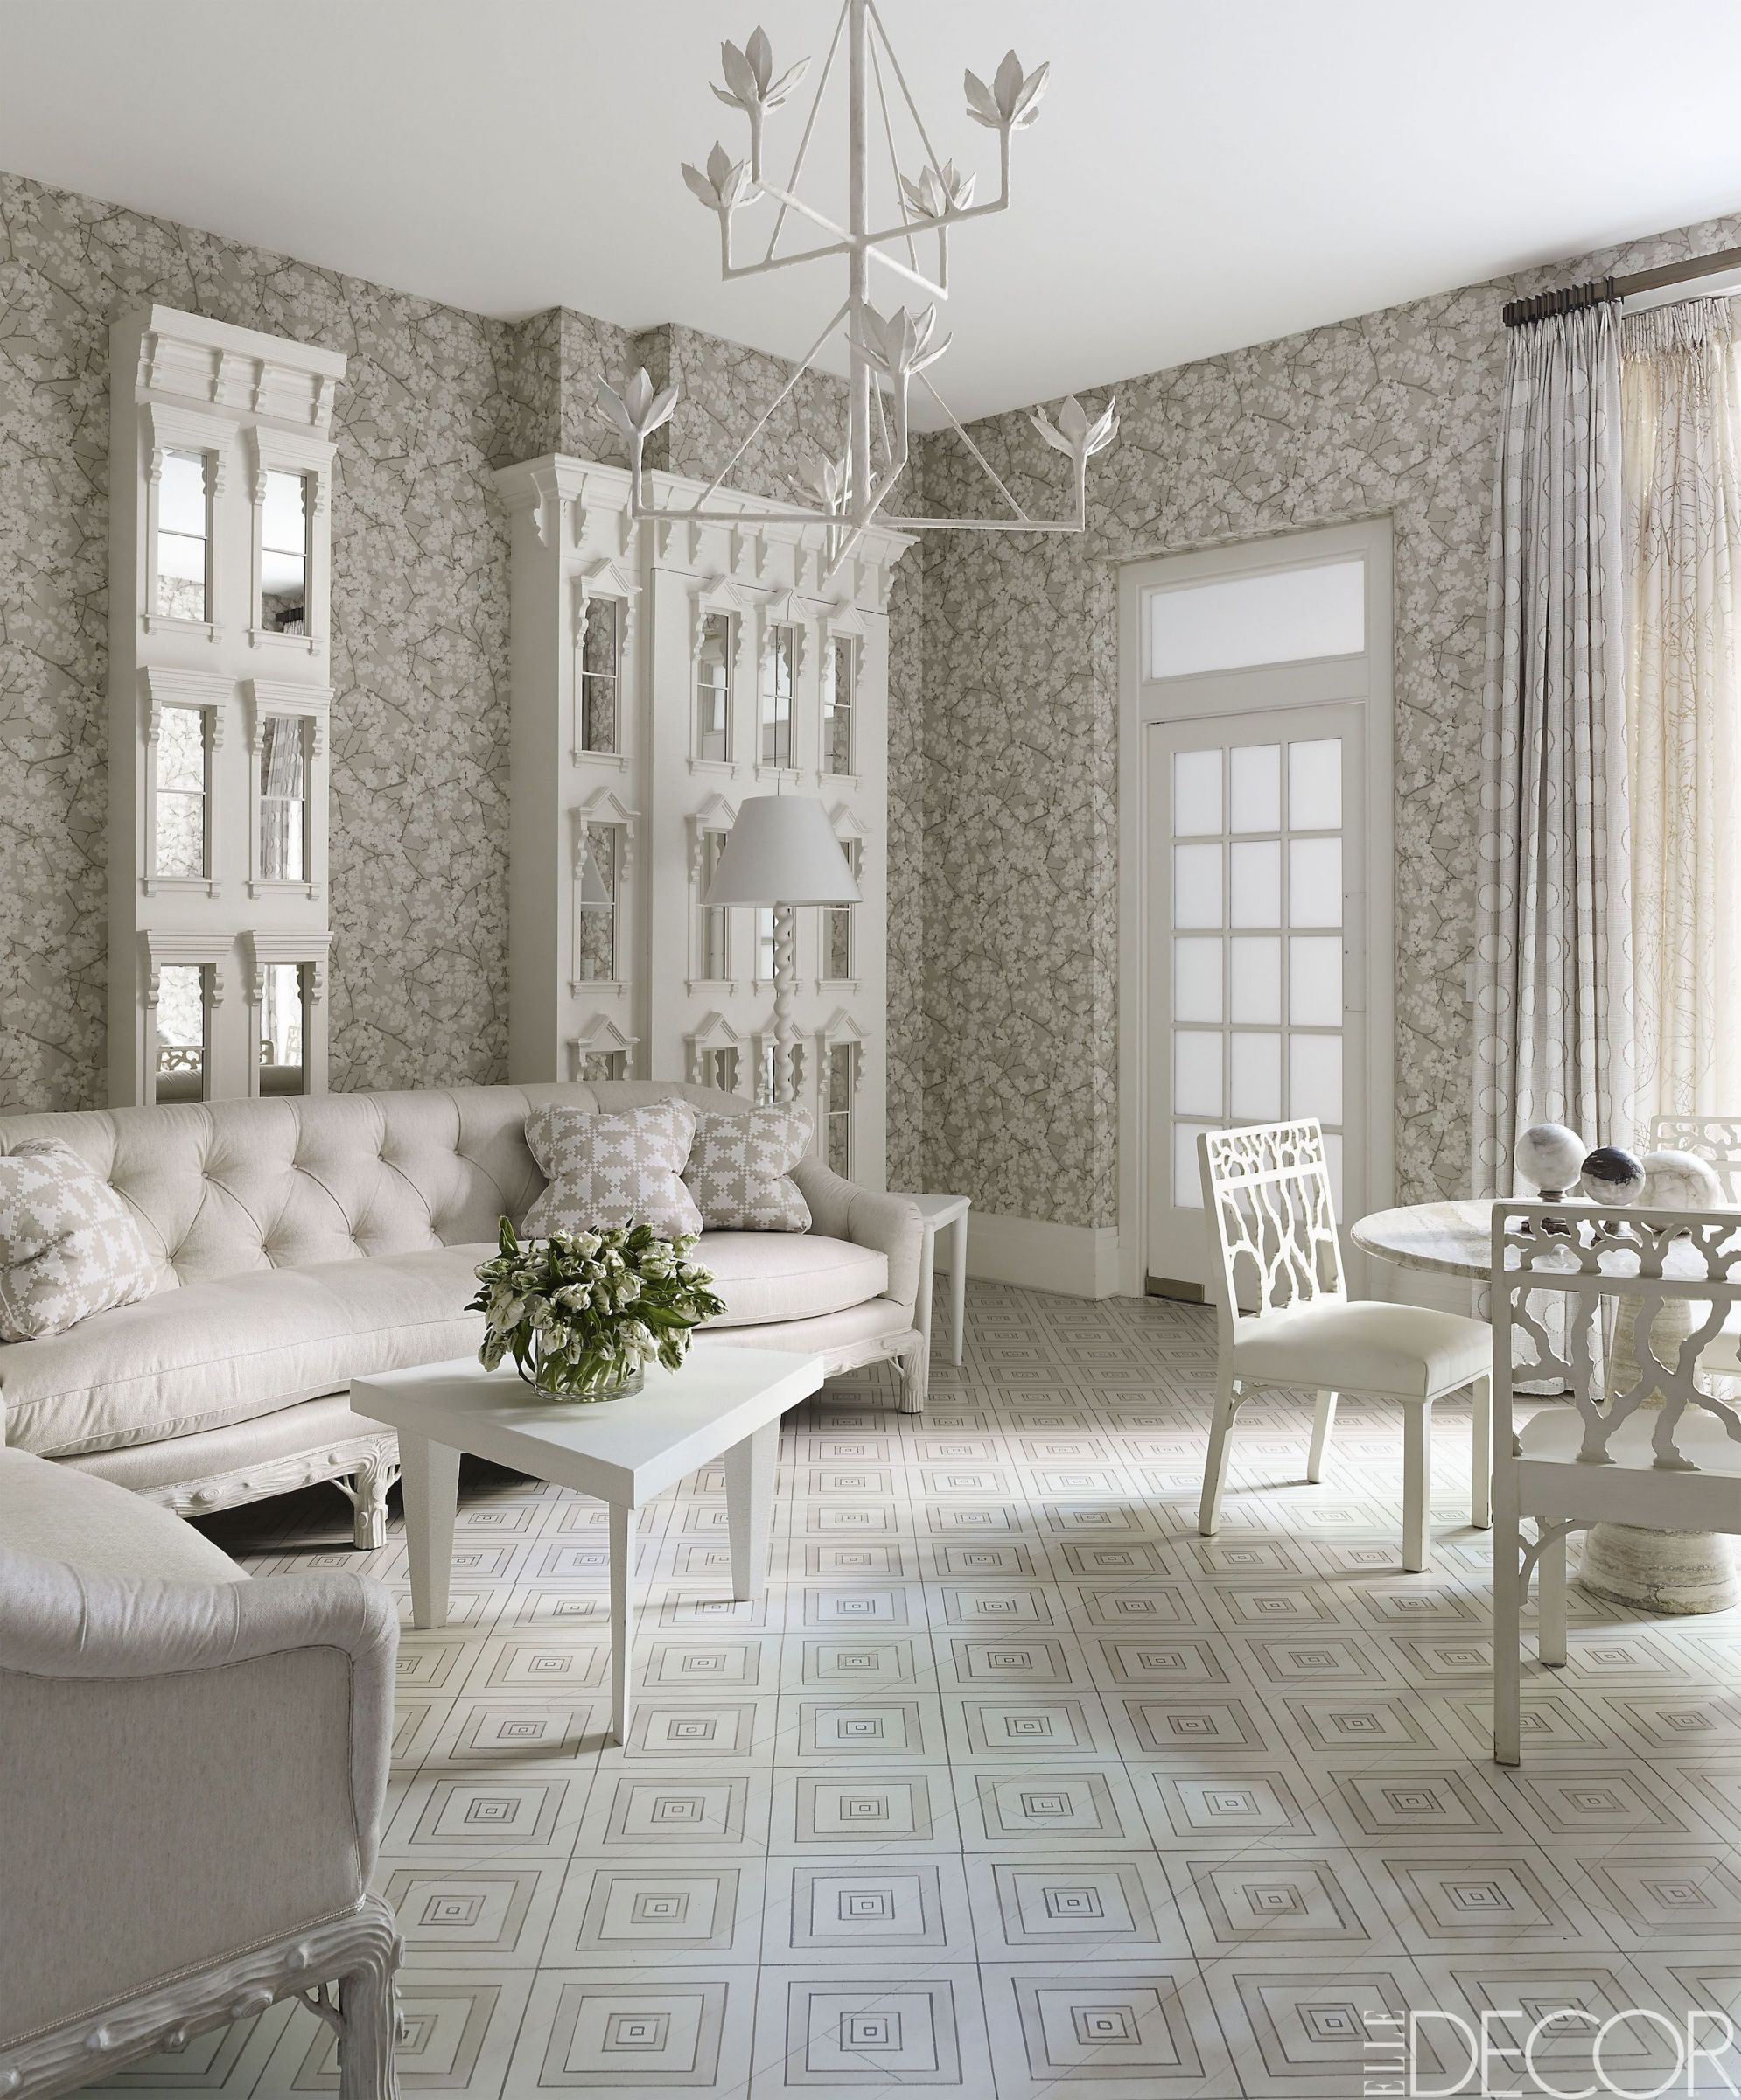 20 White Living Room Furniture Ideas – White Chairs And Couches with Modern Living Room Furniture Ideas